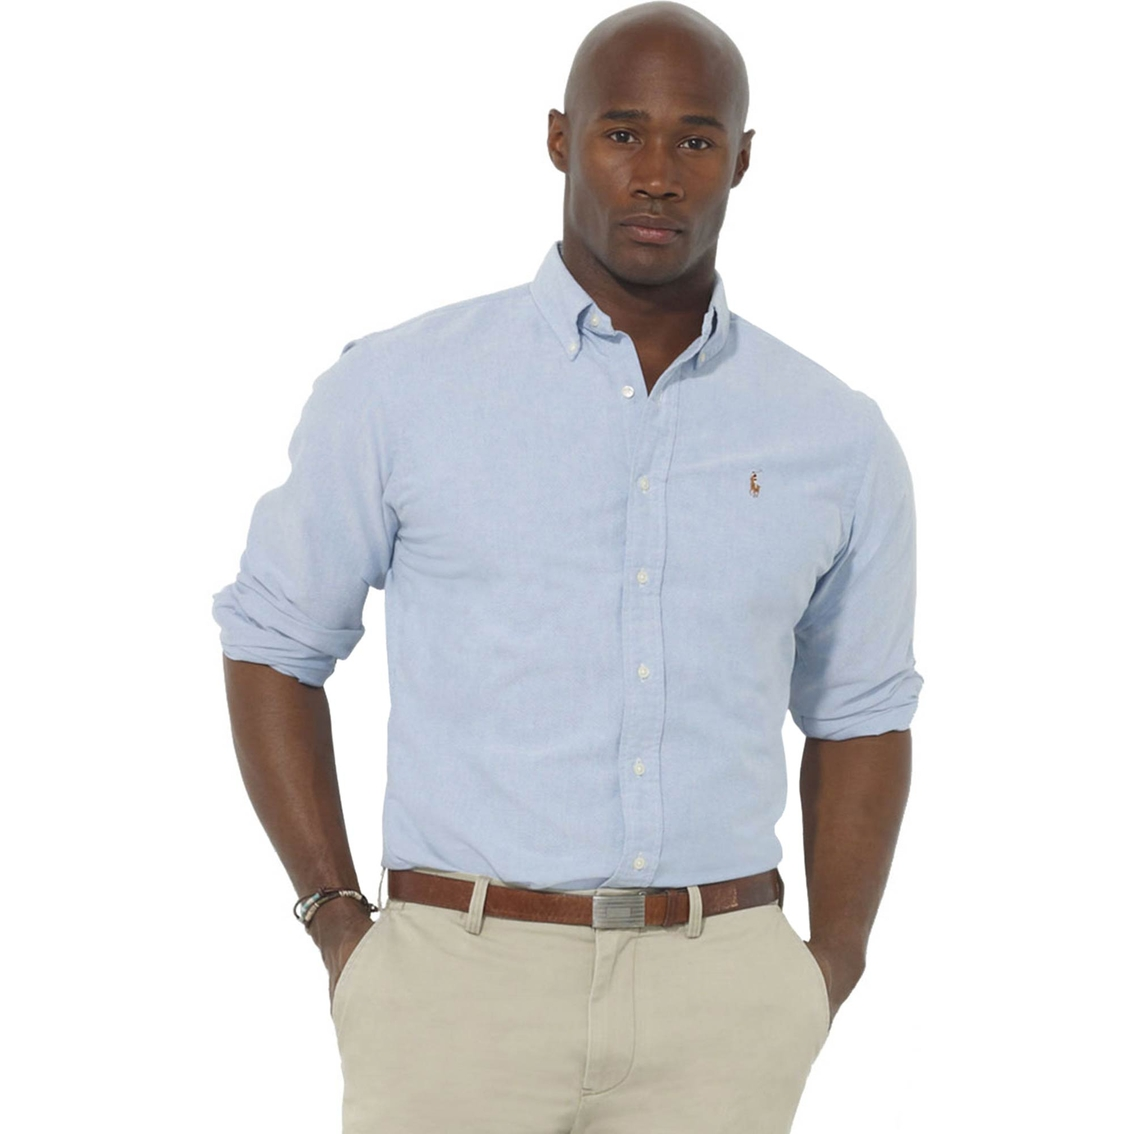 bd0ed341 Polo Ralph Lauren Big & Tall Classic Fit Solid Oxford Sport Shirt ...